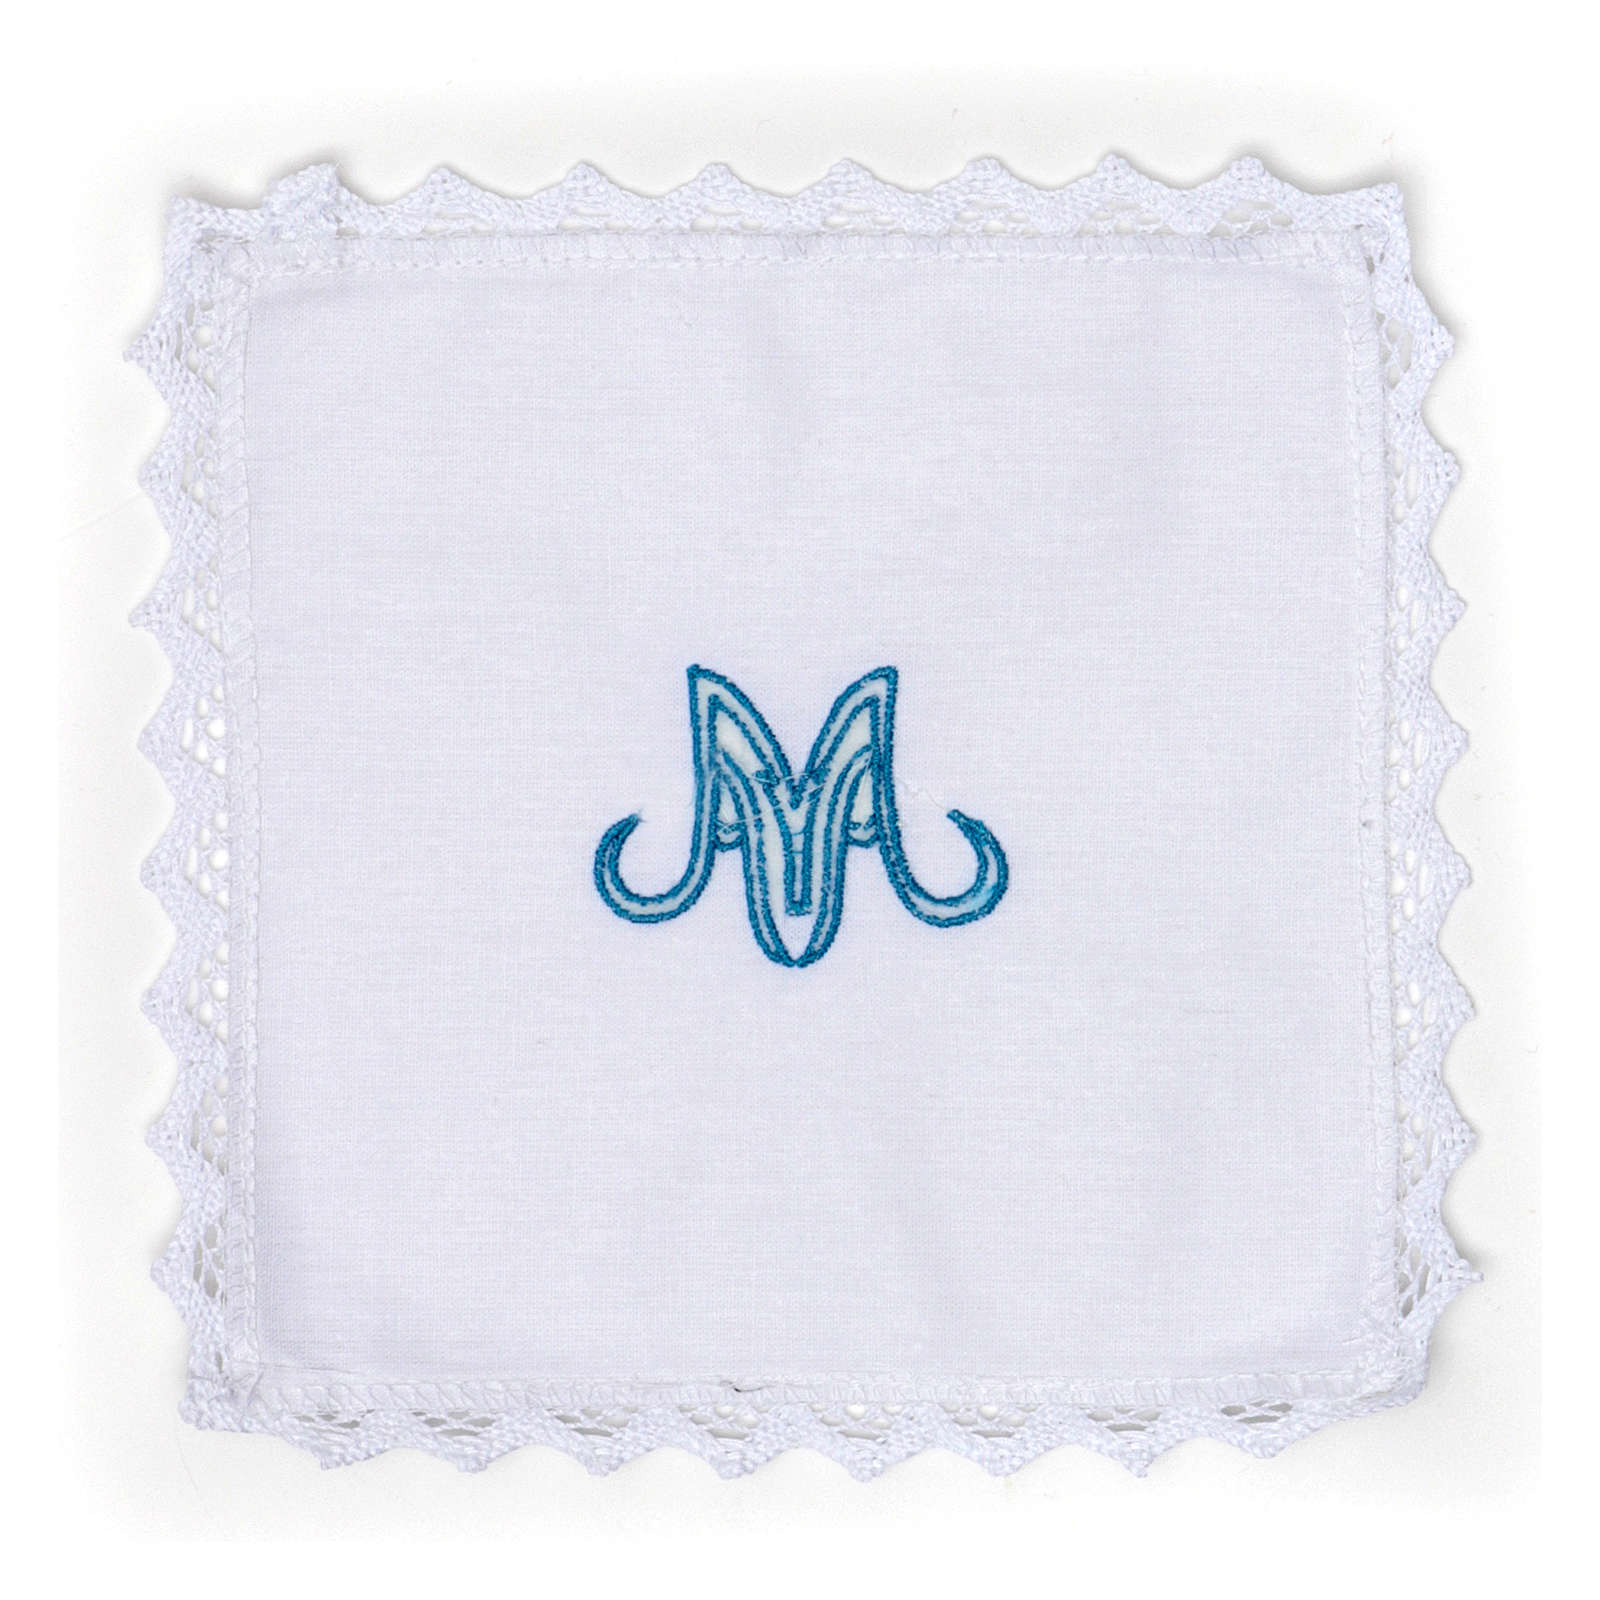 Marian Liturgical set with in pure linen 4